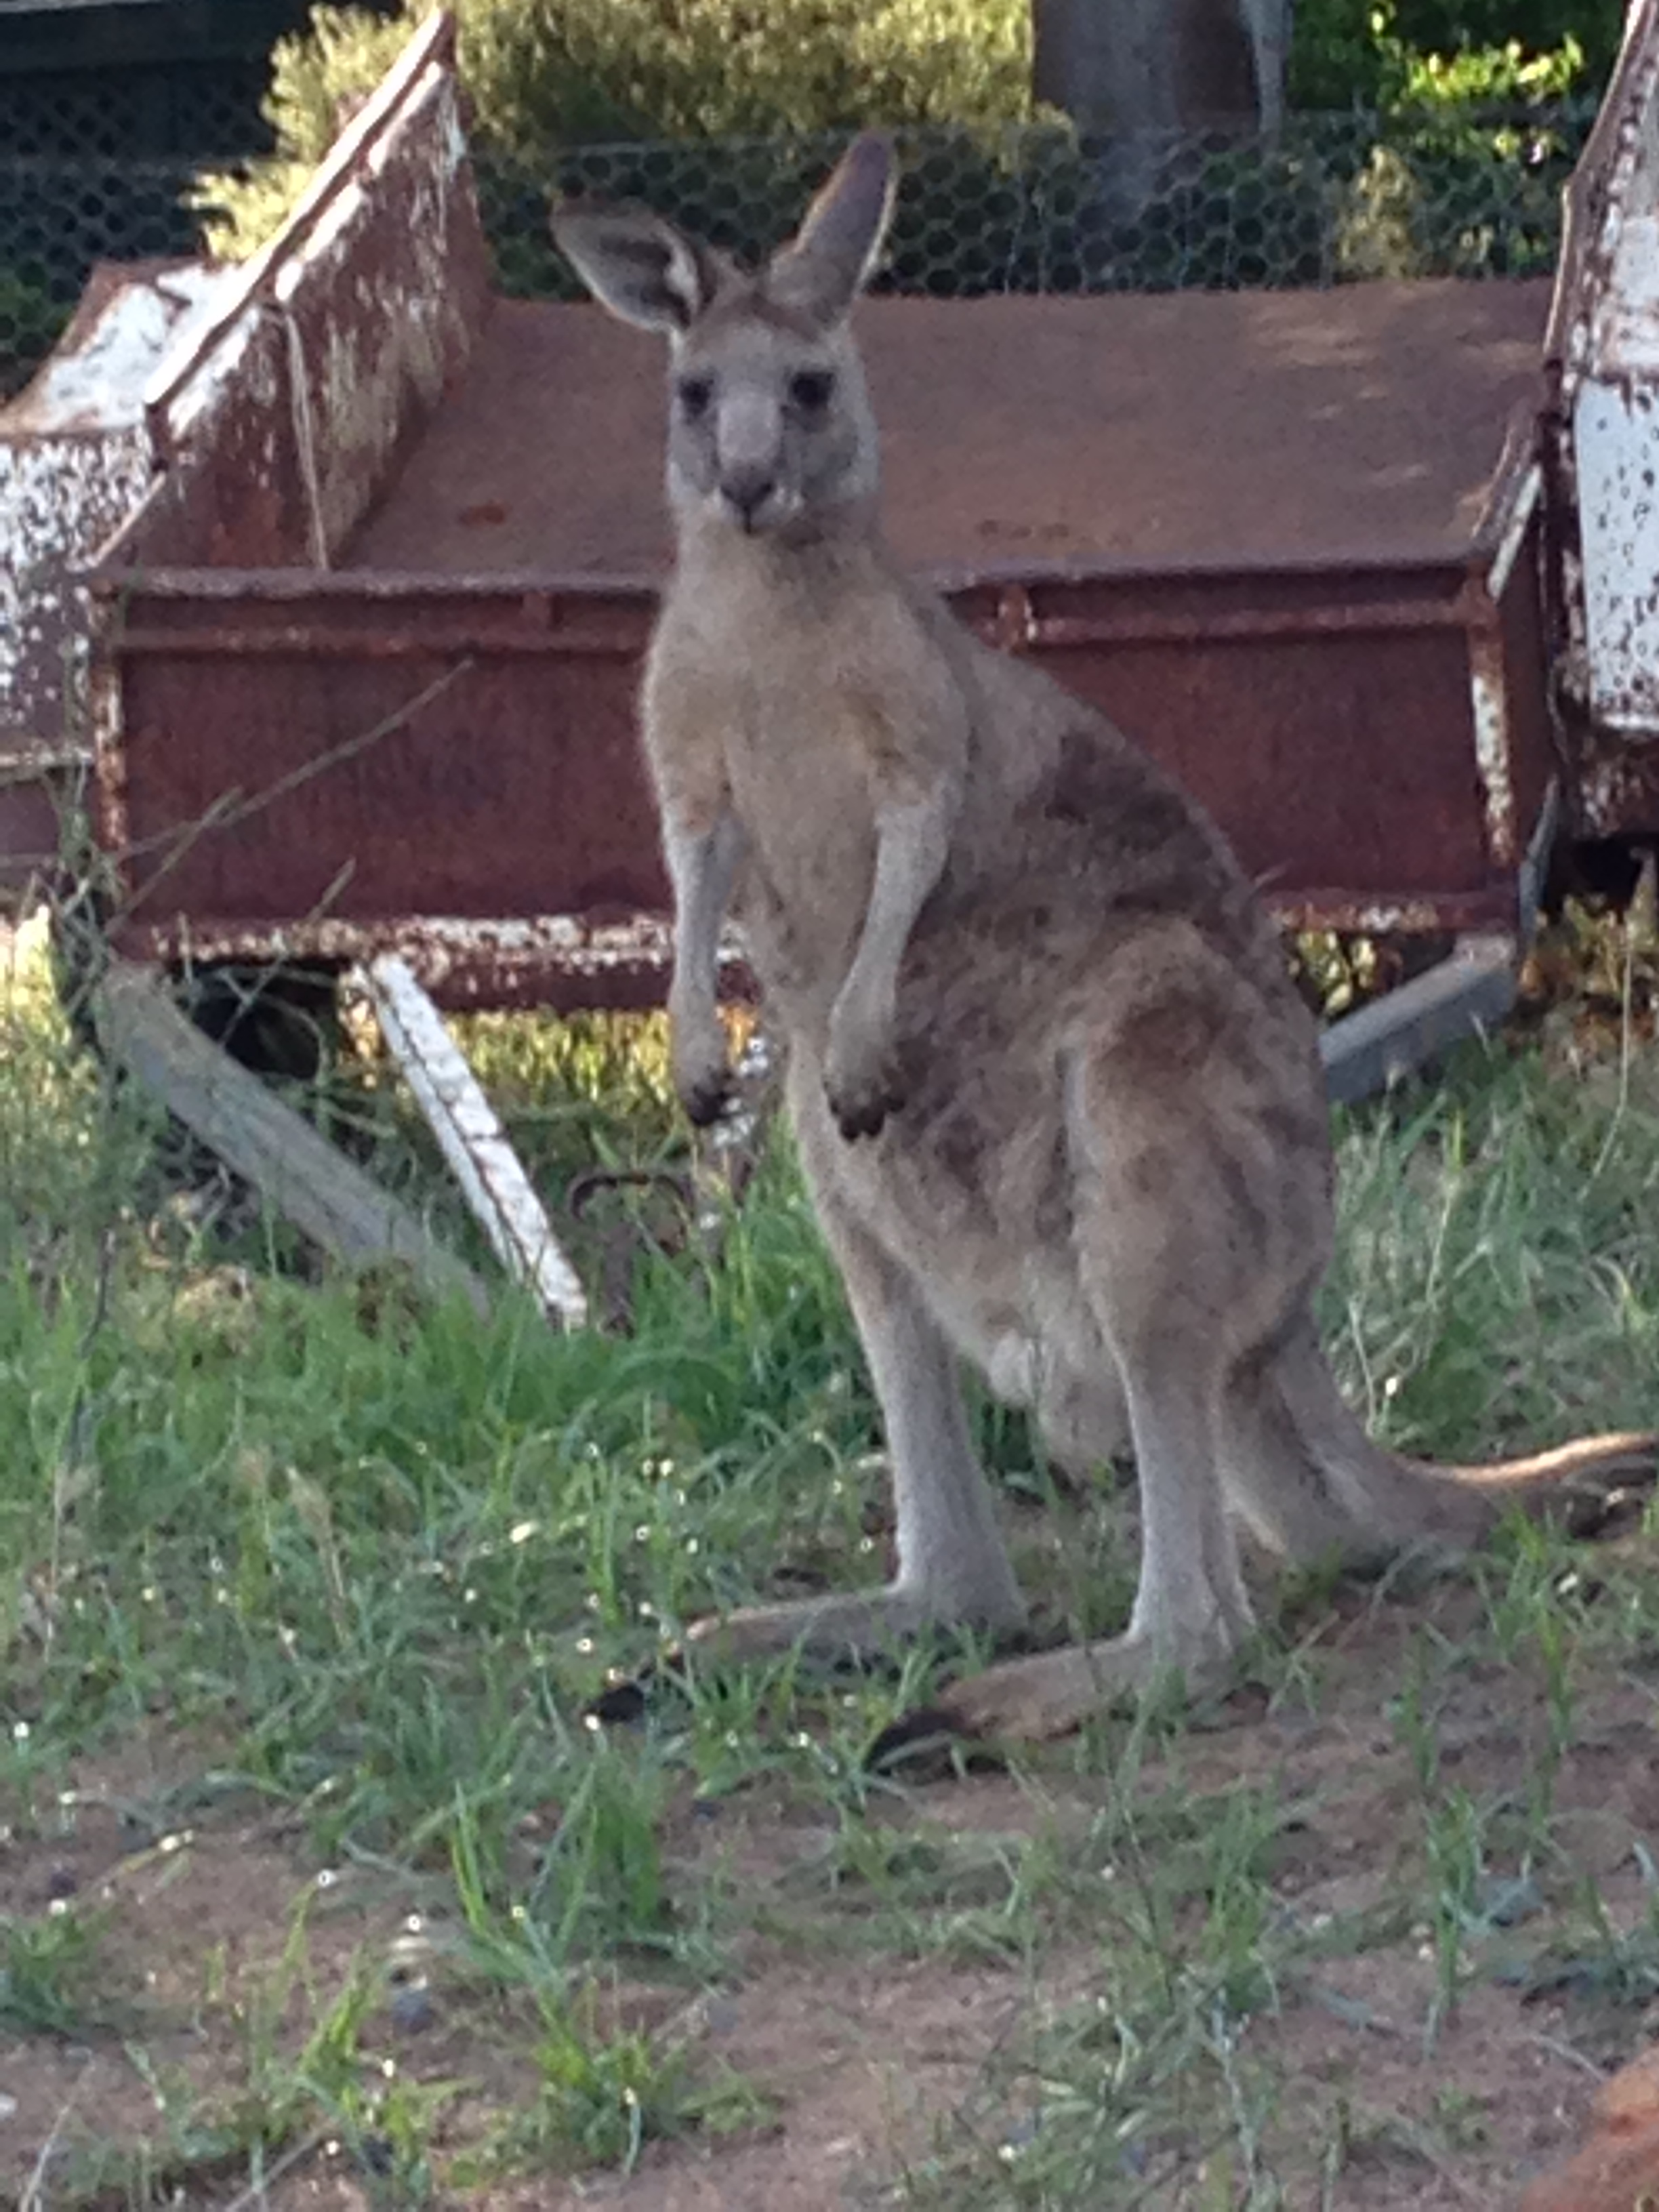 One of many roos gallery image